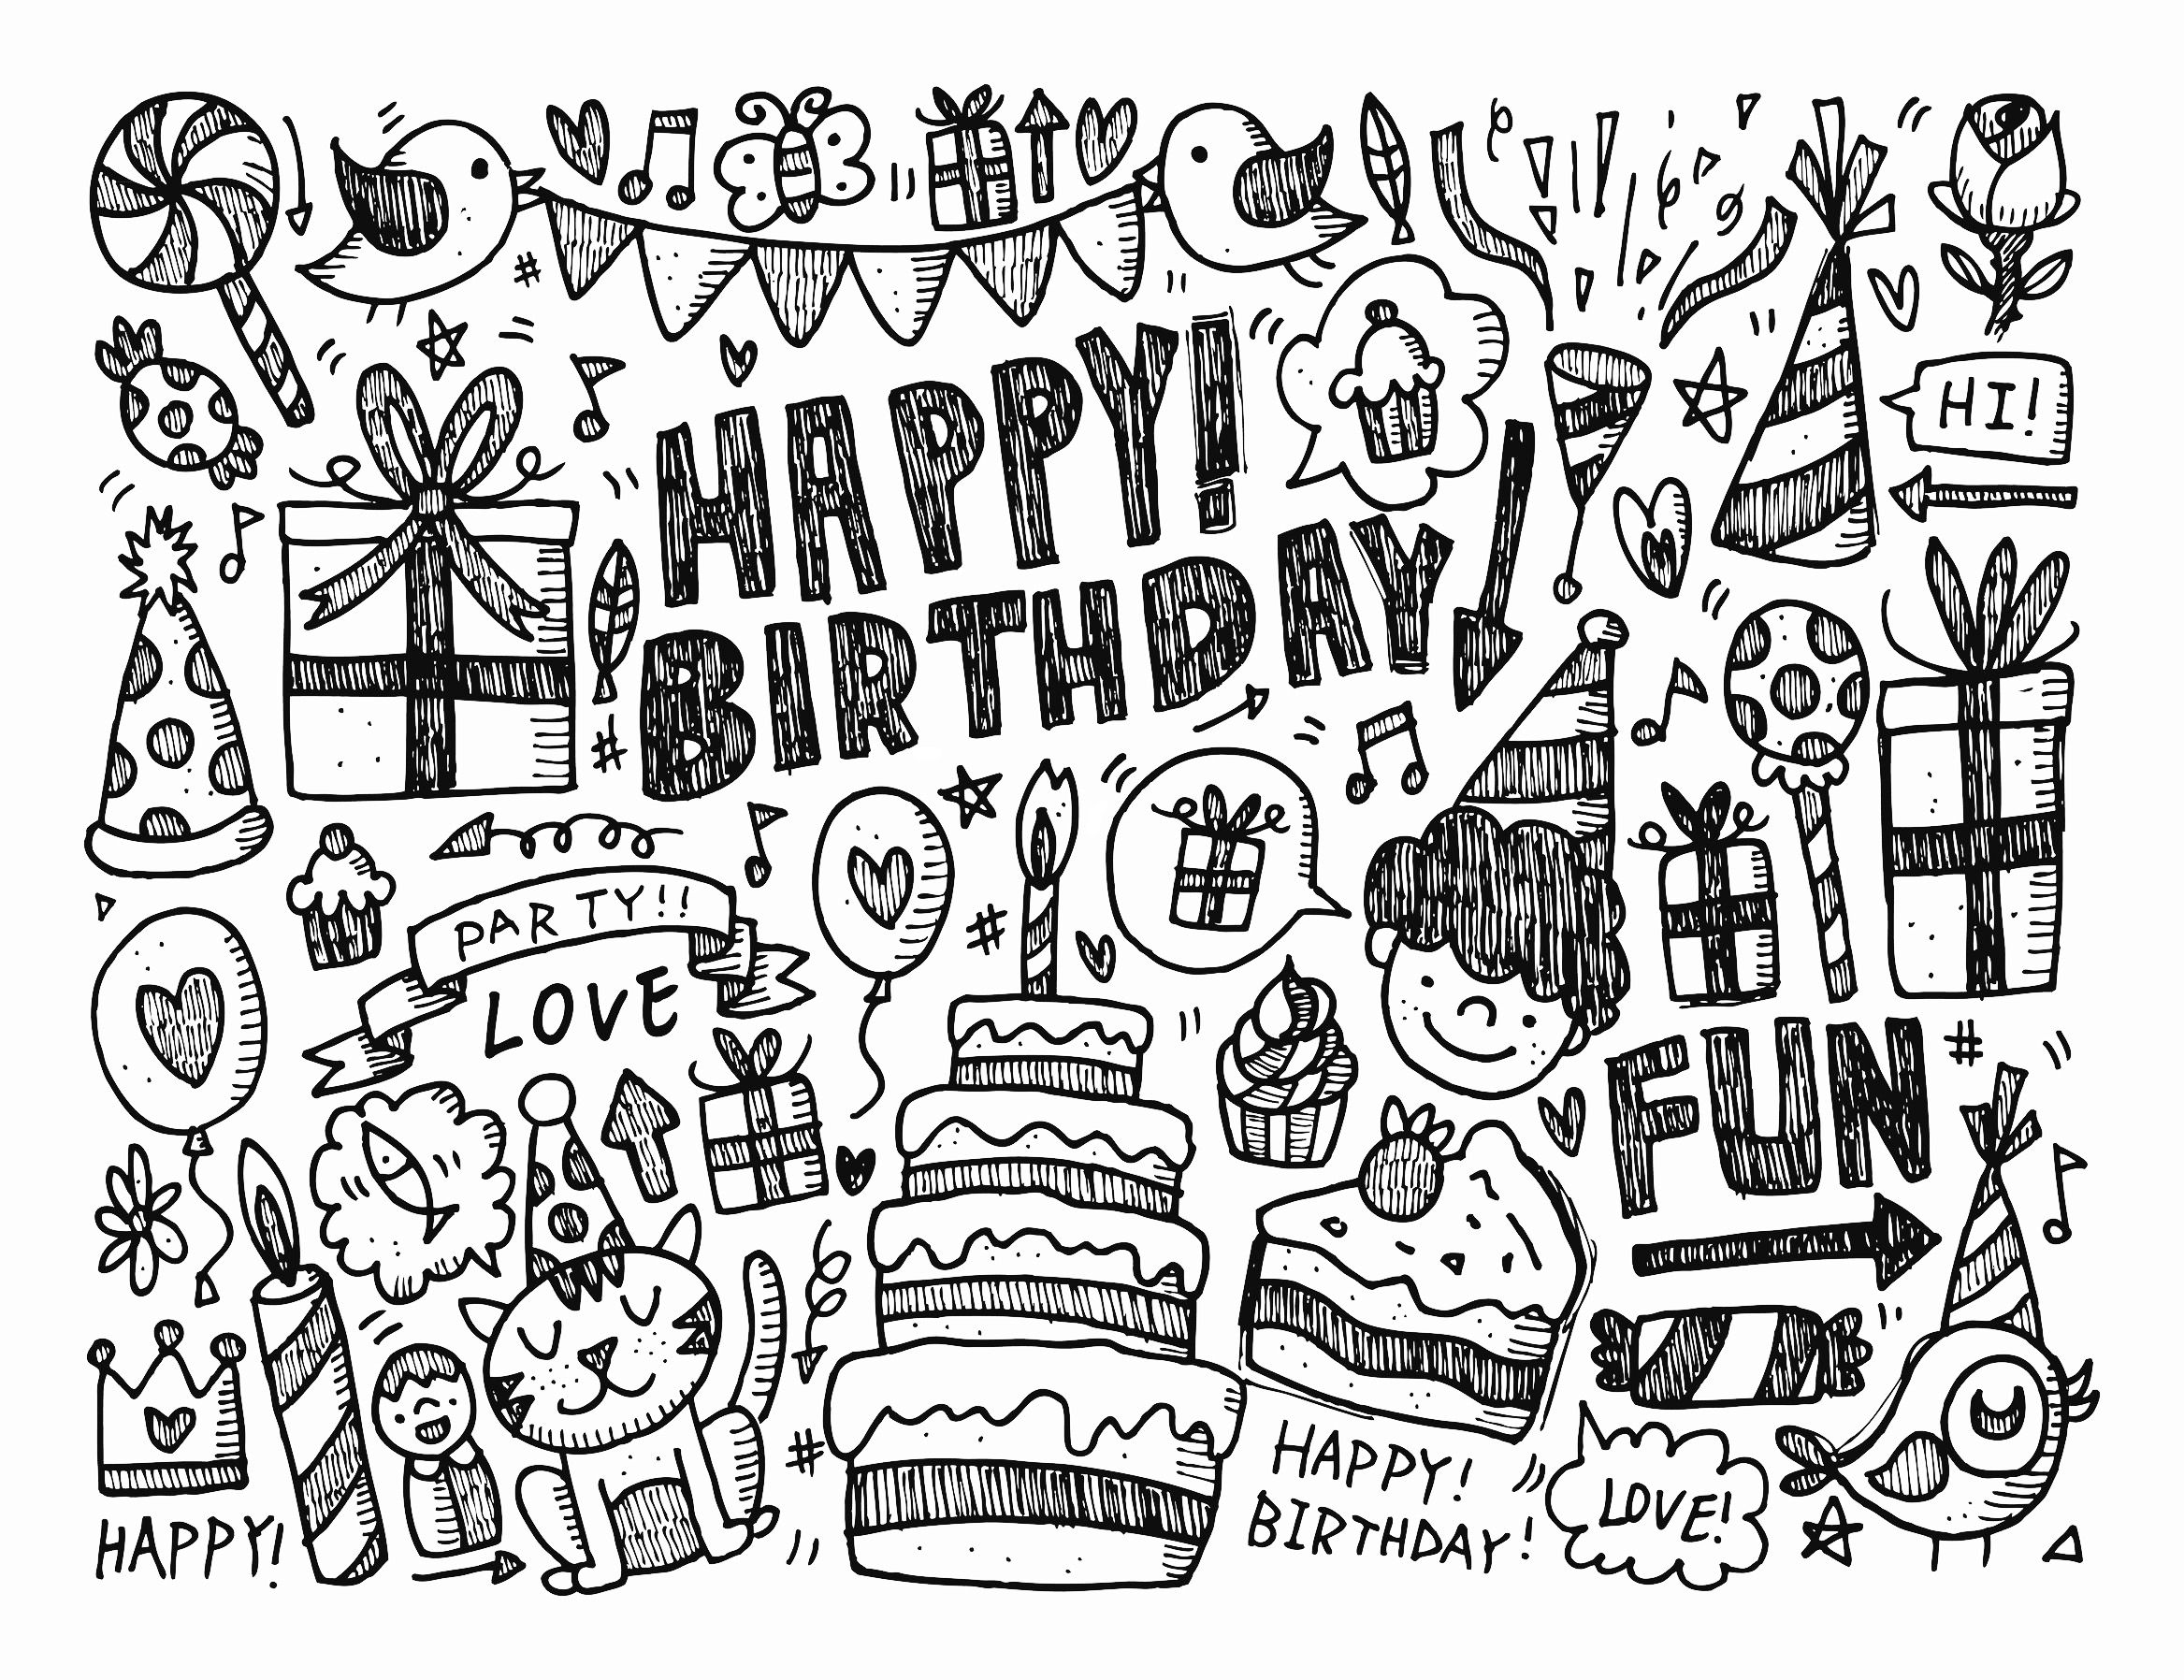 doodle to color u0027happy birthday u0027 by notkoo2008 source 123rf